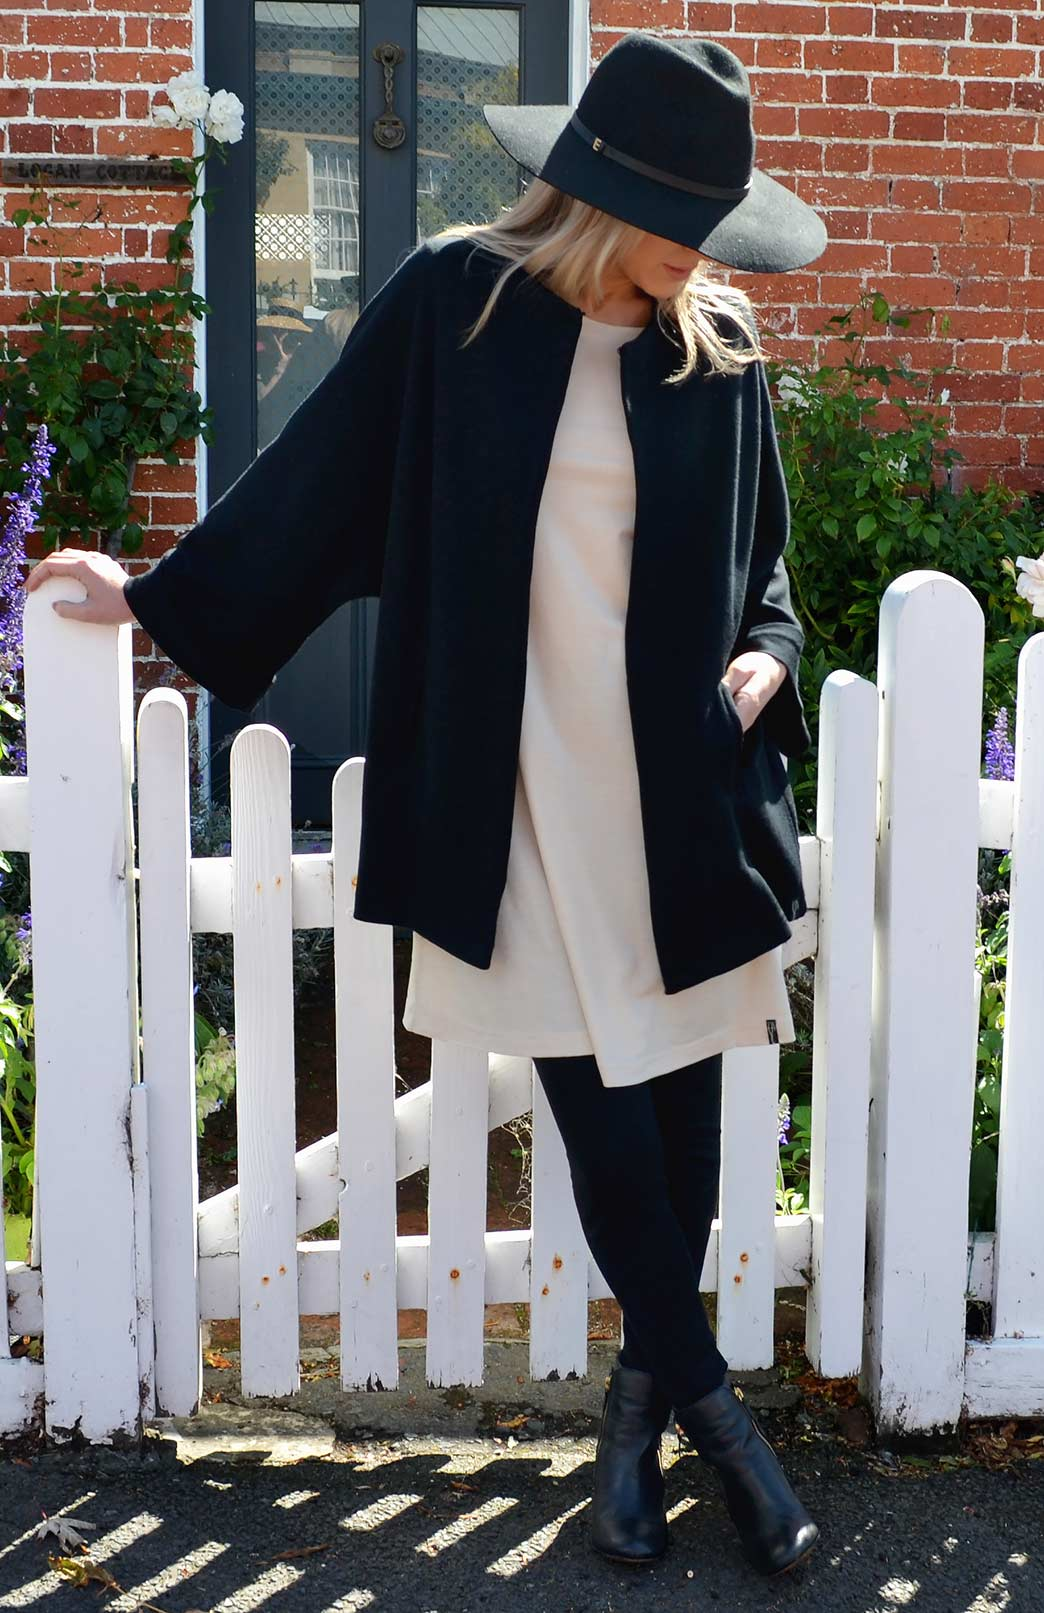 Kimono Coat - Women's Black Heavyweight Woollen Kimono Coat with hook and eye fastening and side pockets - Smitten Merino Tasmania Australia